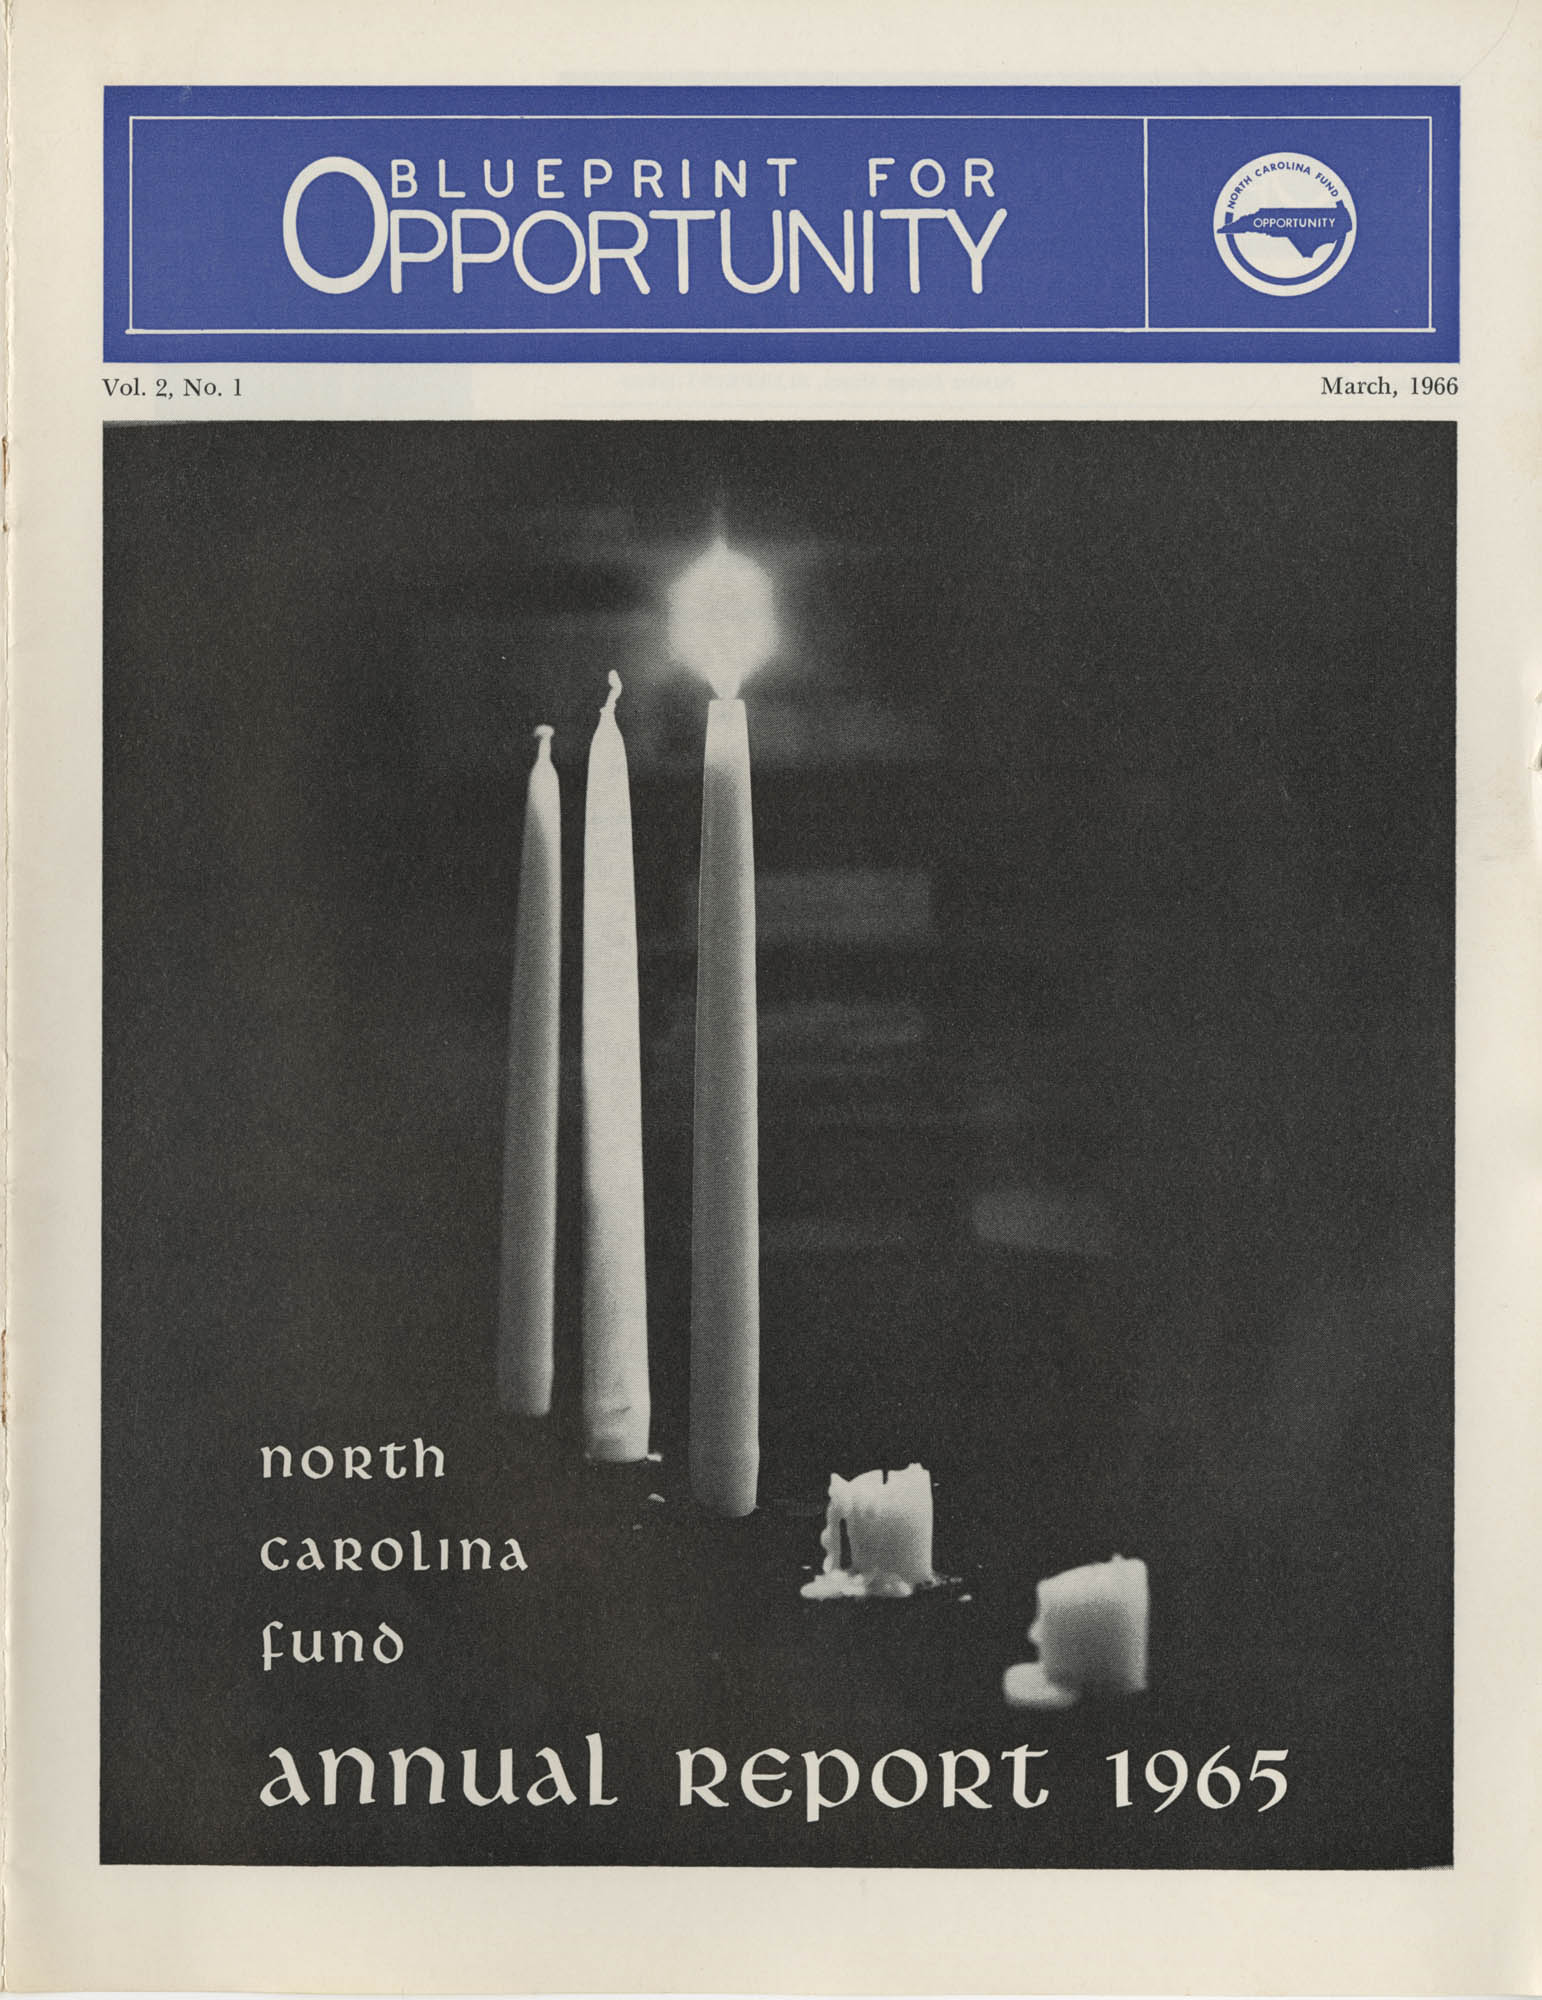 Blueprint for Opportunity, Vol. 2, No. 1